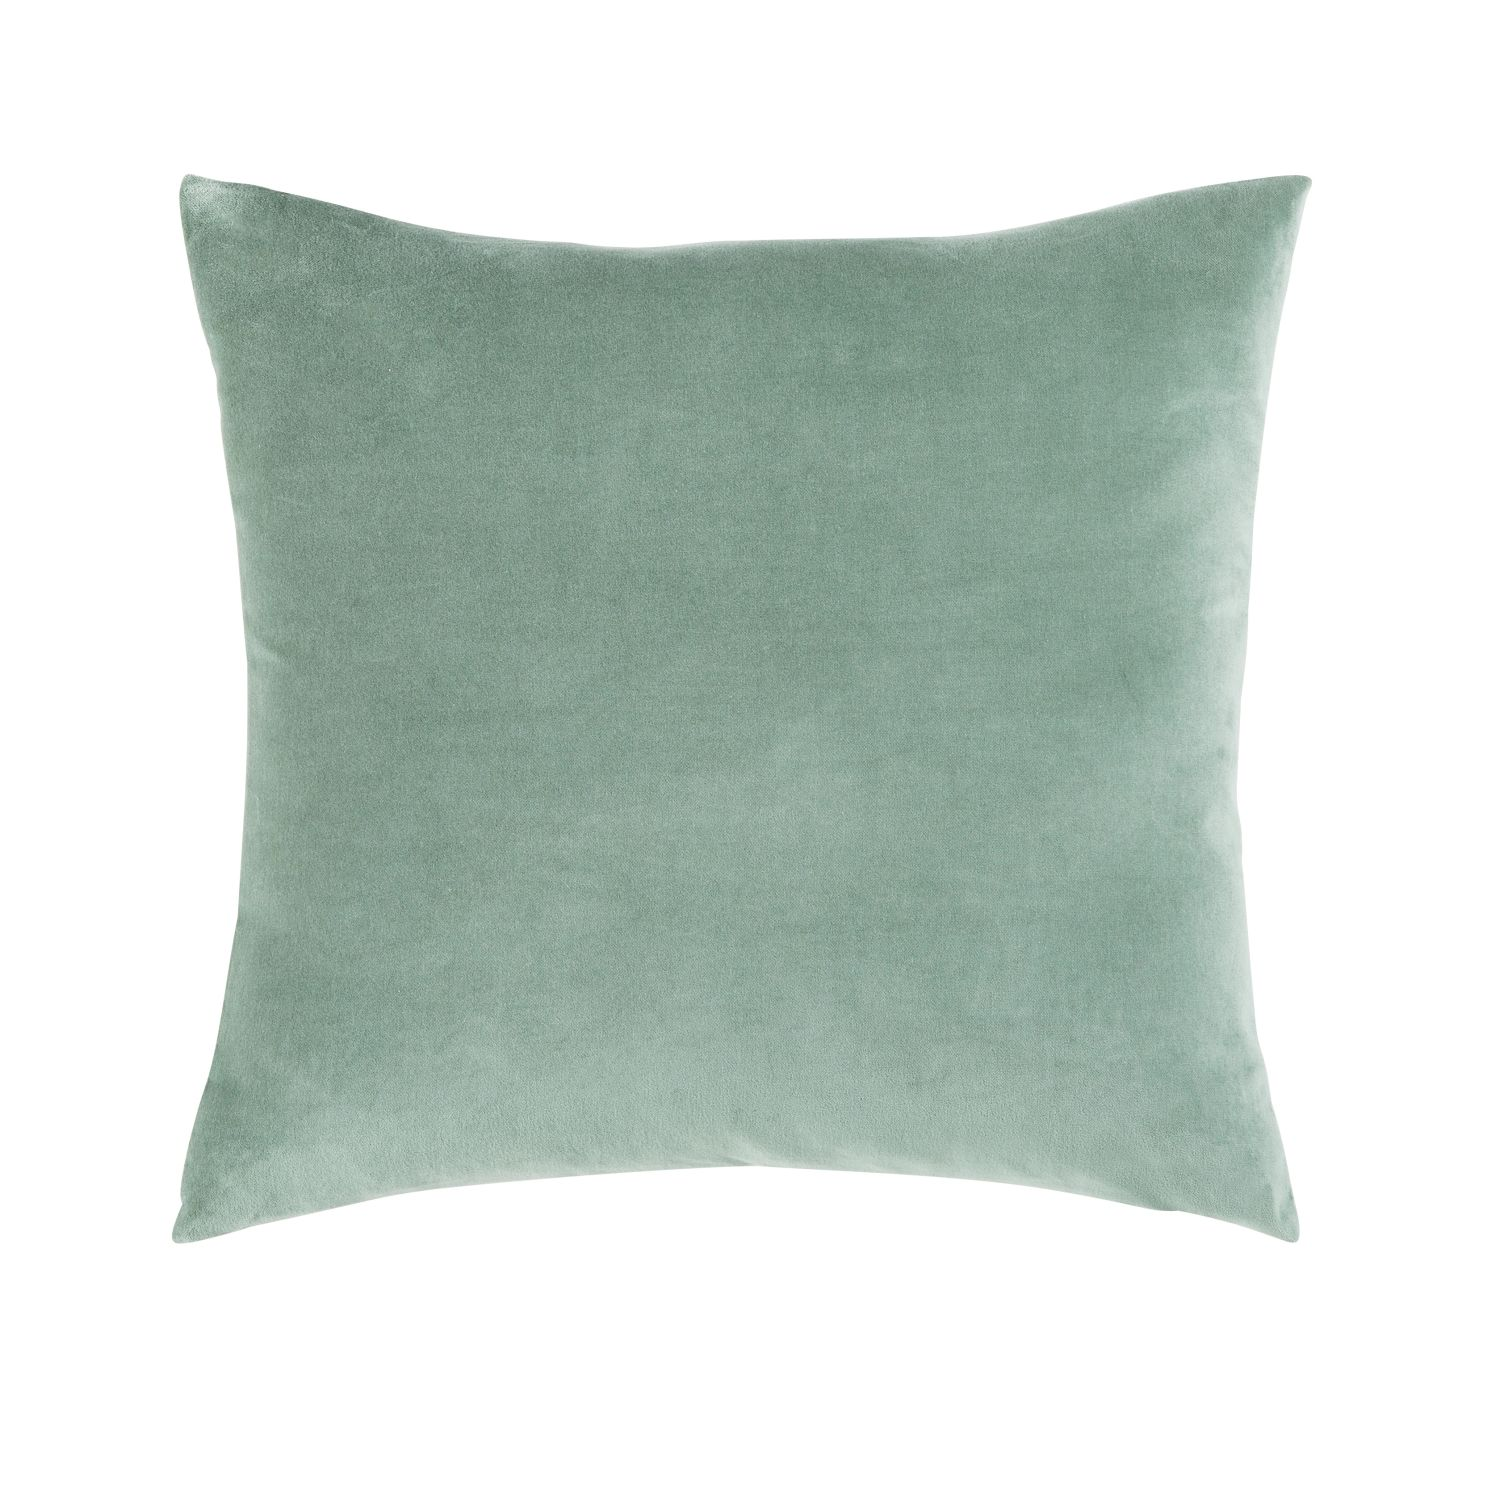 coussin en velours vert tilleul 45x45 maisons du monde. Black Bedroom Furniture Sets. Home Design Ideas